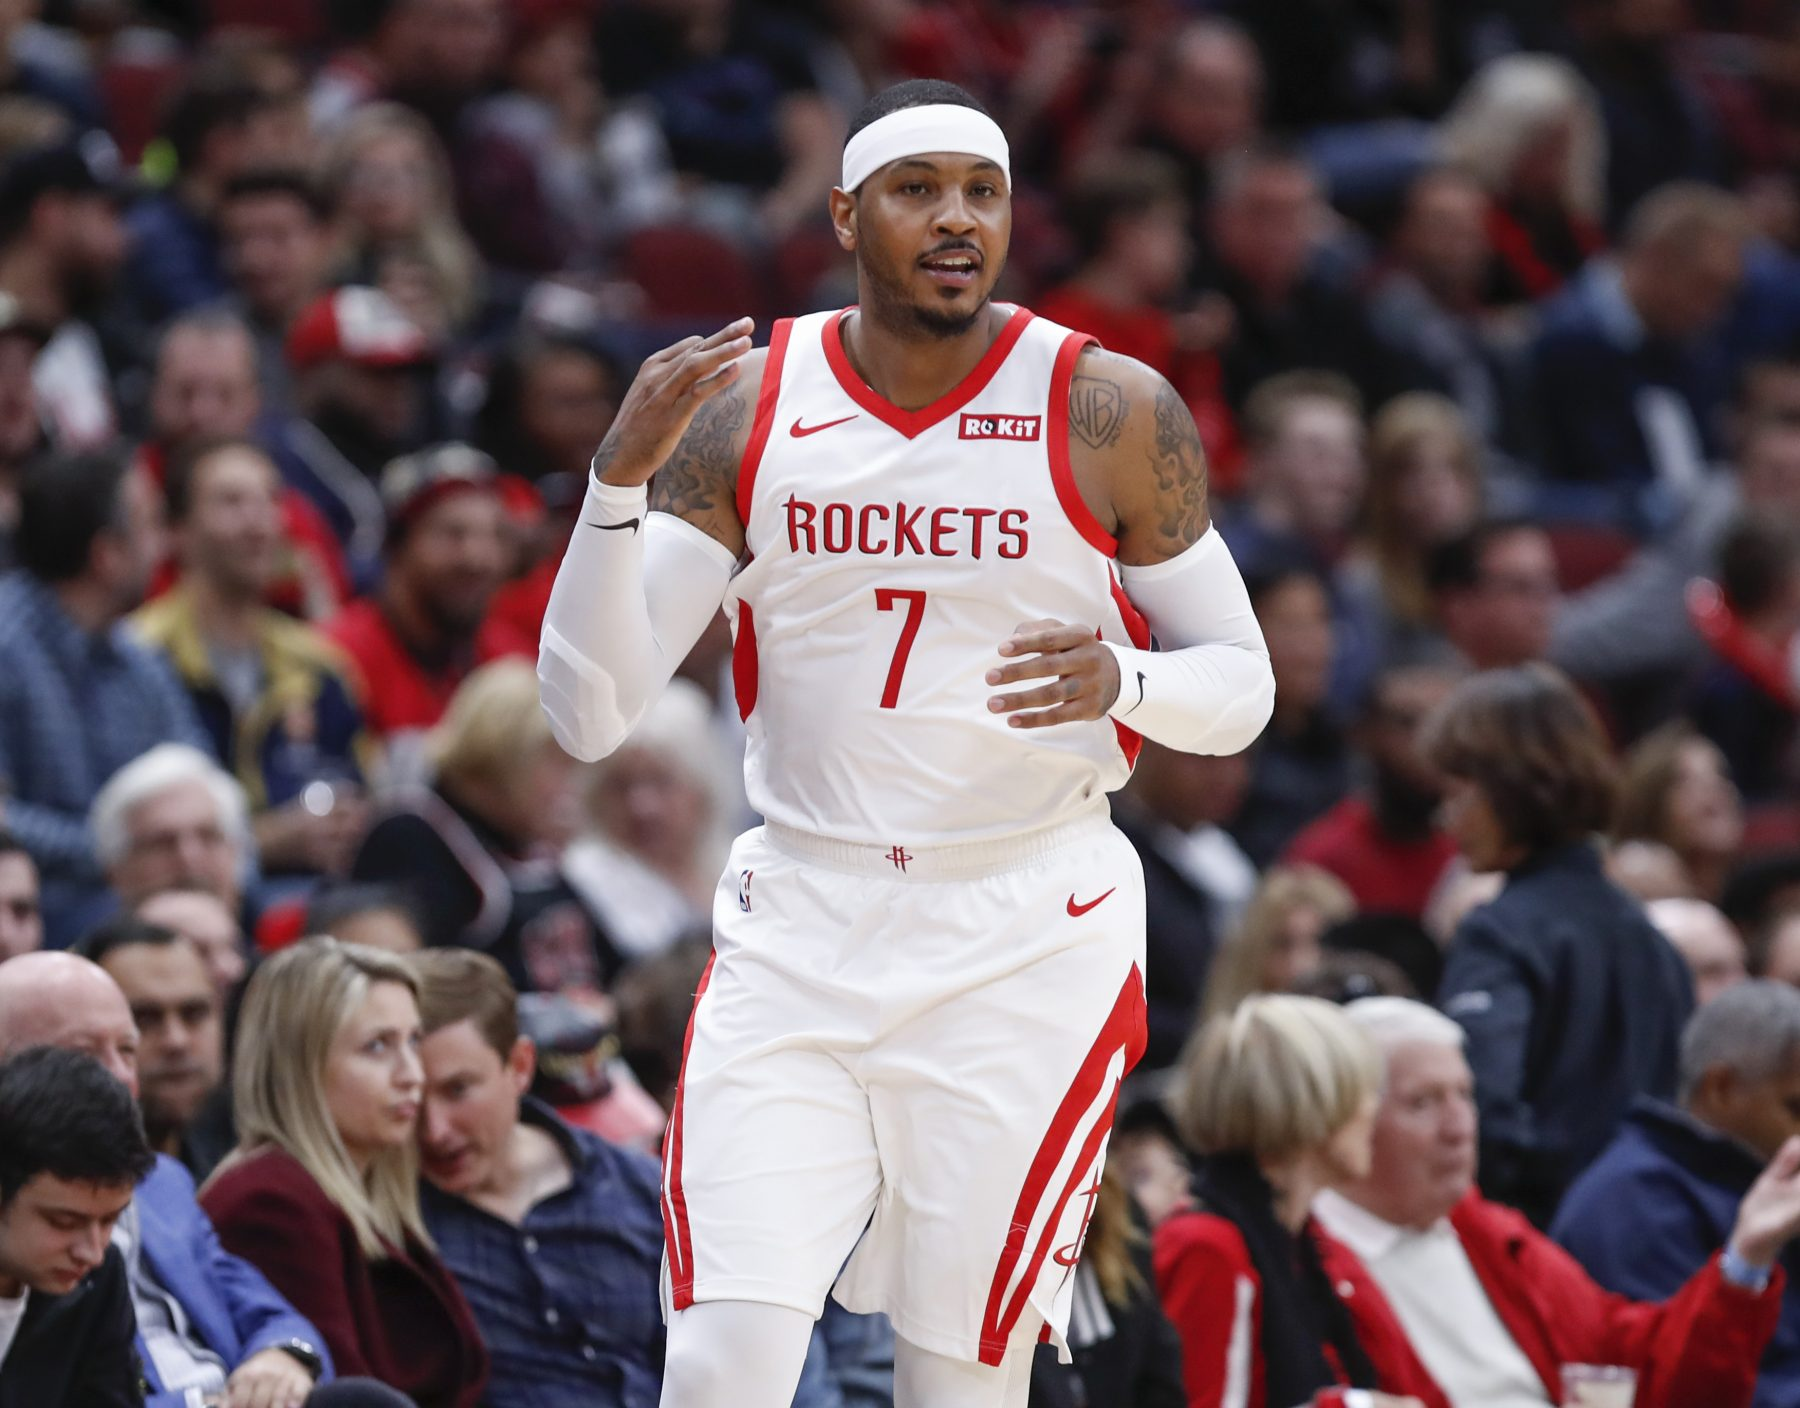 Report: Houston Rockets Source Says Carmelo Anthony Would've Been Better Off in Miami